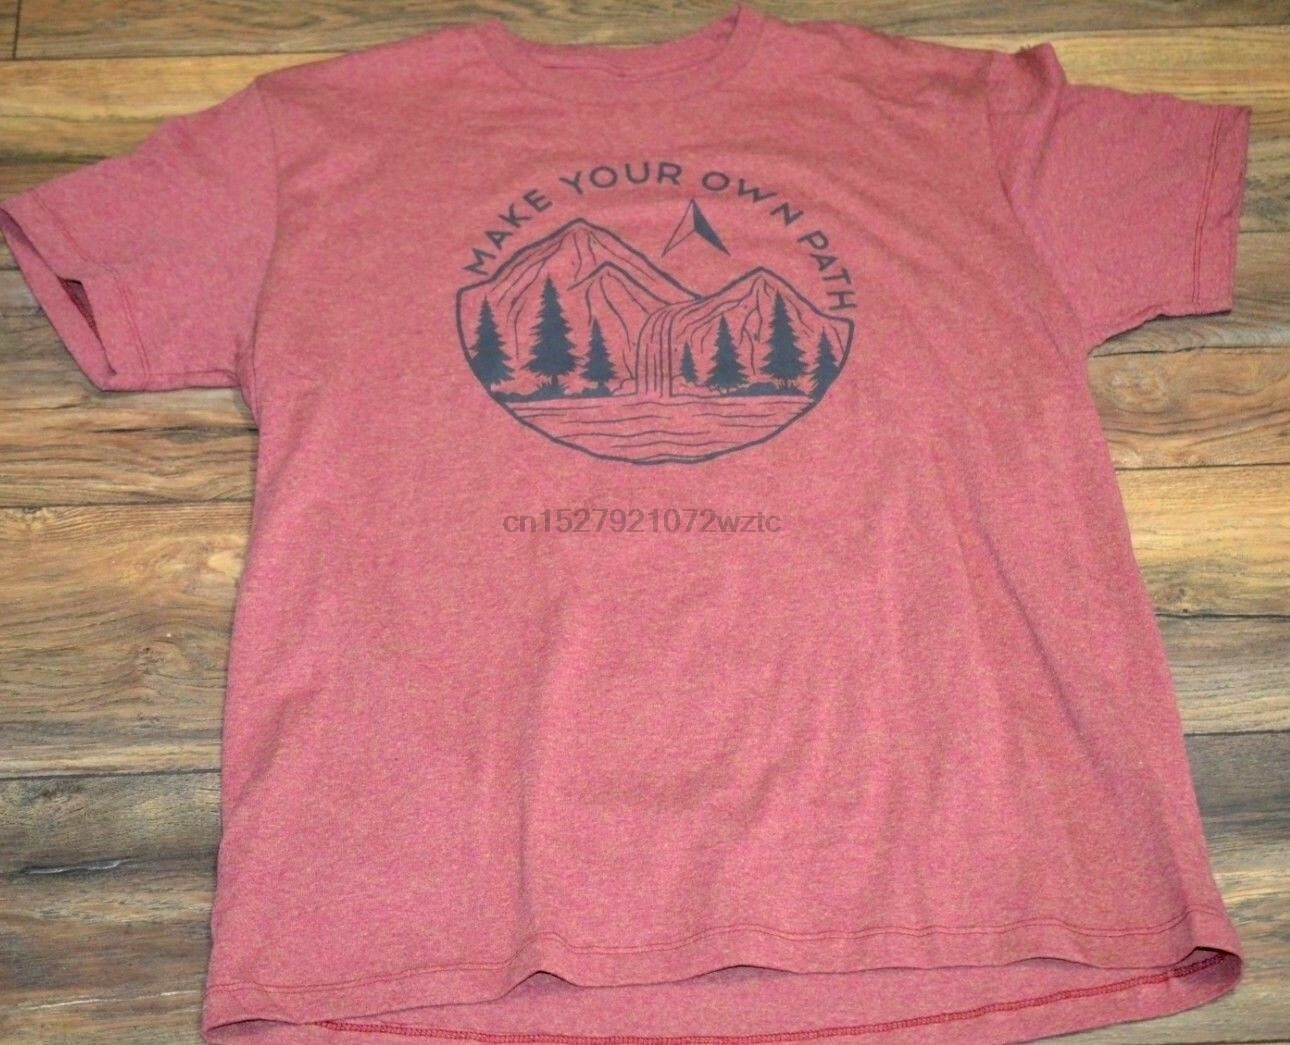 Make Your Own Path Tee Men's Sonoma Goods For Life T-Shirt Outdoors Adventure